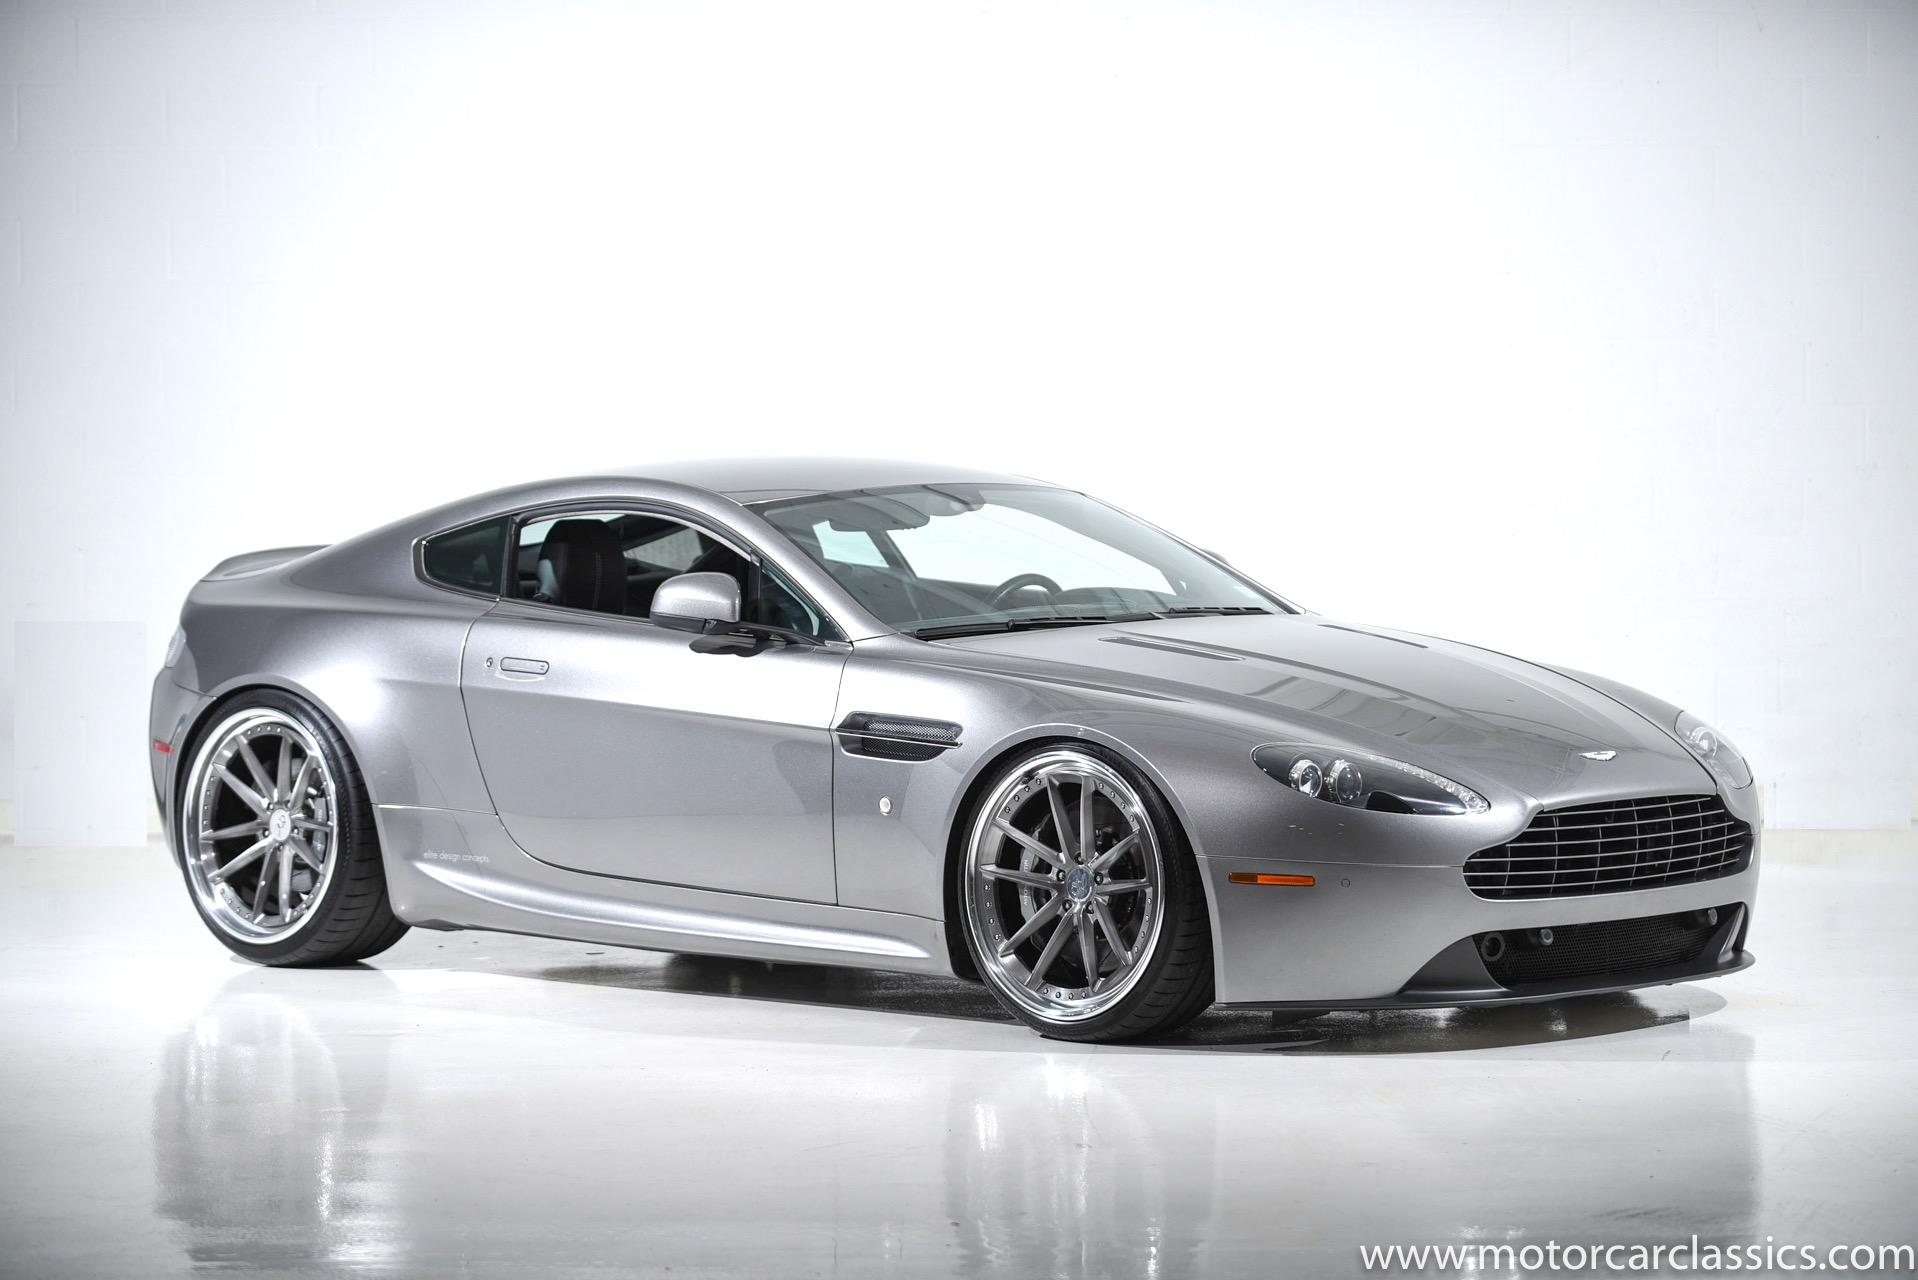 used 2013 aston martin v8 vantage for sale 68 900 motorcar classics stock 1363. Black Bedroom Furniture Sets. Home Design Ideas